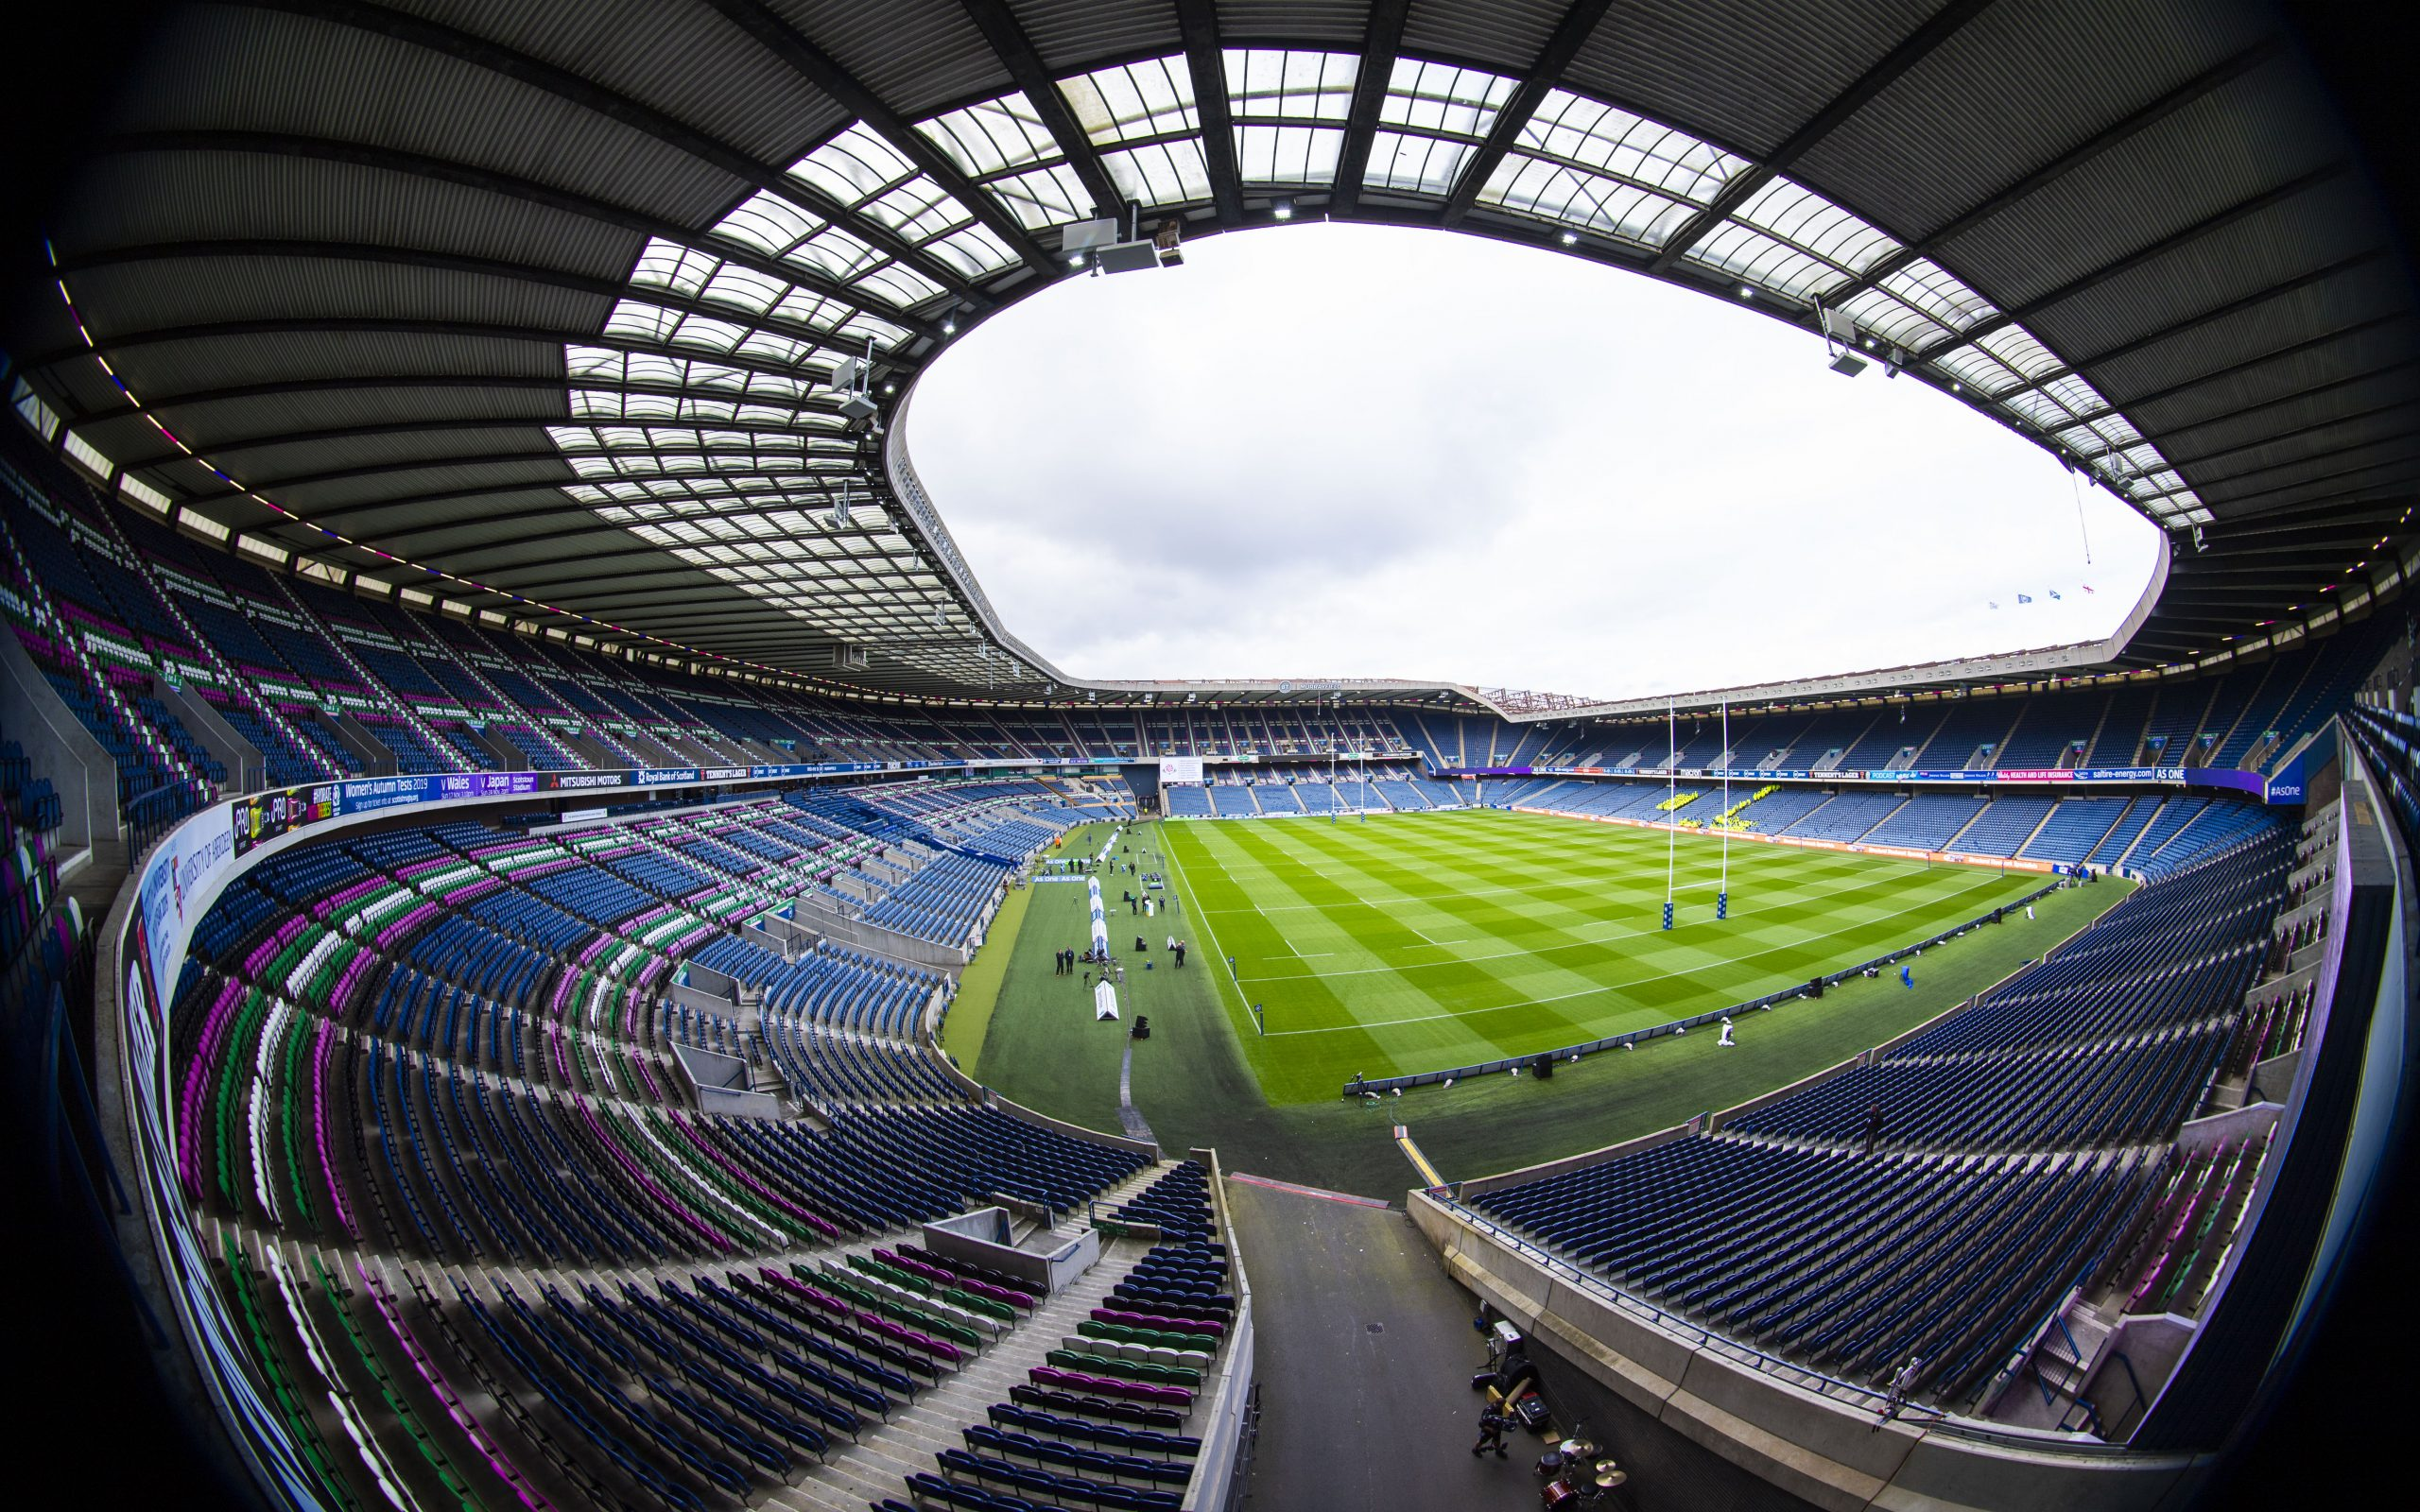 Banqueting at Murrayfield Stadium